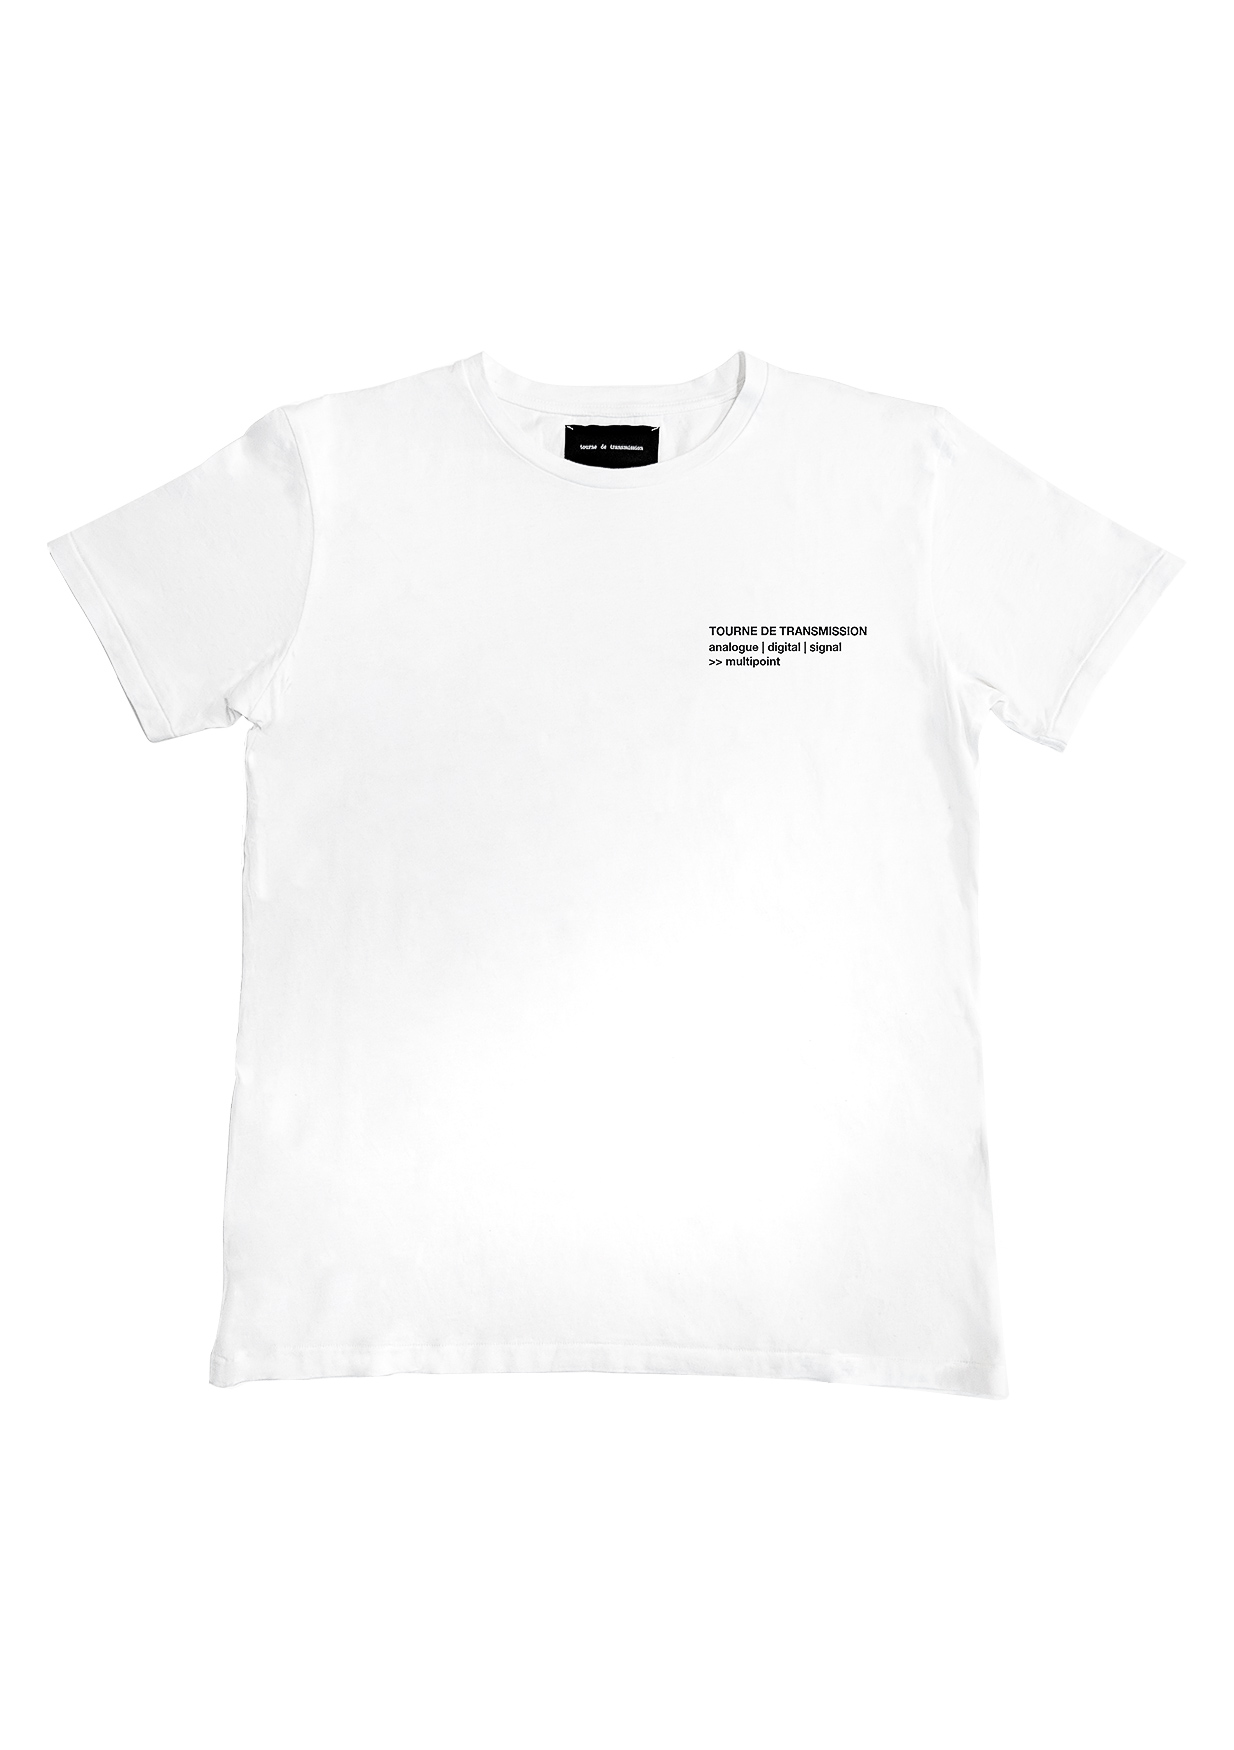 FWD T-shirt - White / Black